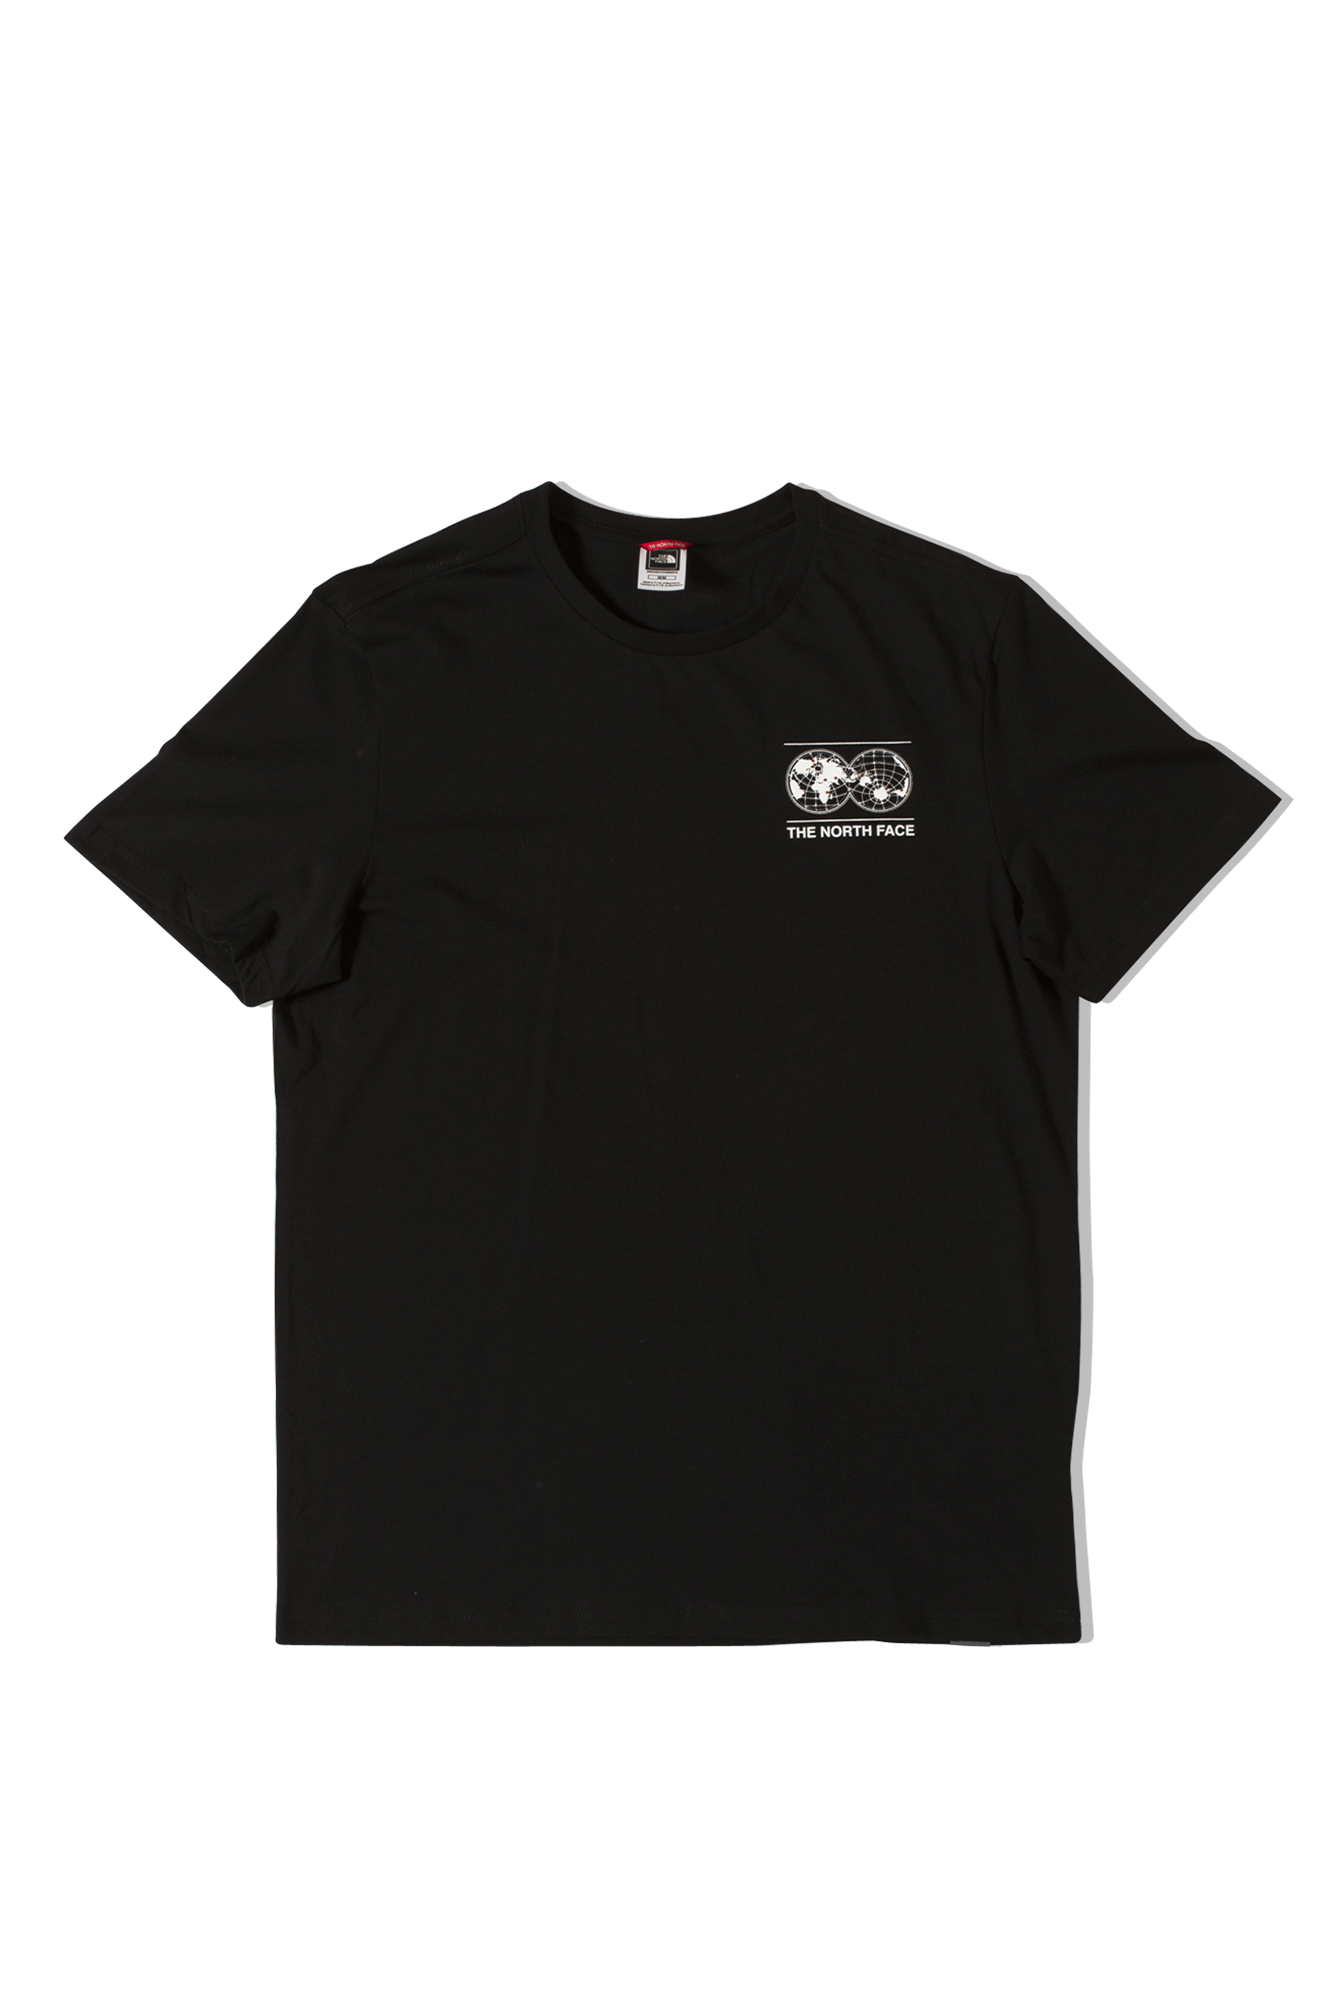 7SE S/S Graphic Tee Black